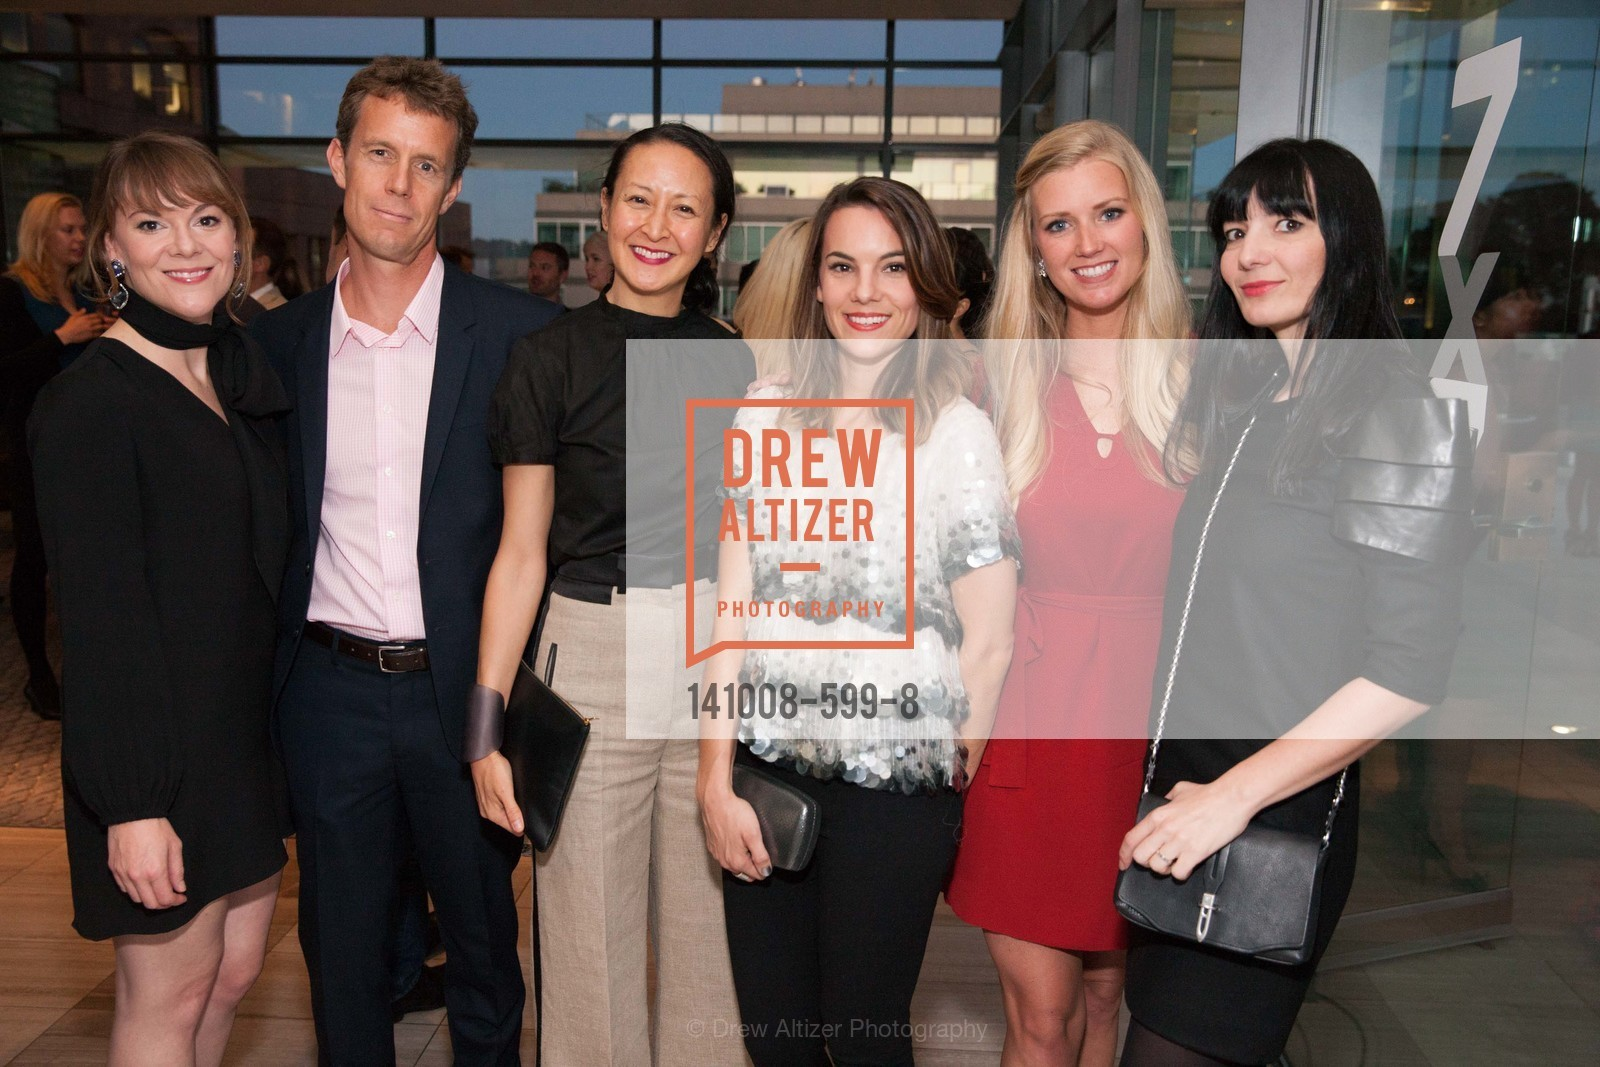 Chloe Hennen, Jothen Frey, Tina Frey, Natalie Wages, Ann Bedwell, Camelia Zkikos, 7x7 HOT 20, US, October 9th, 2014,Drew Altizer, Drew Altizer Photography, full-service agency, private events, San Francisco photographer, photographer california